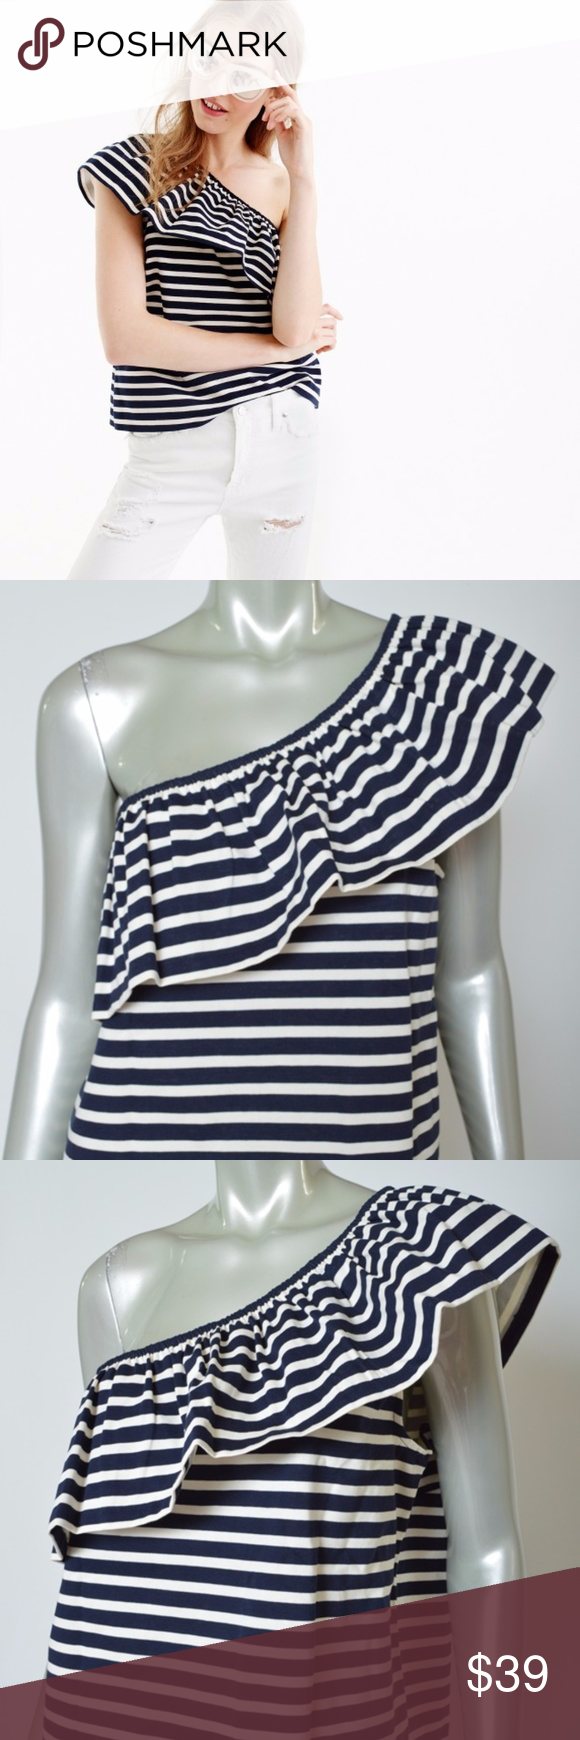 960906c06f83c J Crew Top Shirt One Shoulder Striped Navy White L J Crew Large One  Shoulder Striped Navy Blue   White Ruffle Cotton New Shirt L Total length  is 23 inches ...